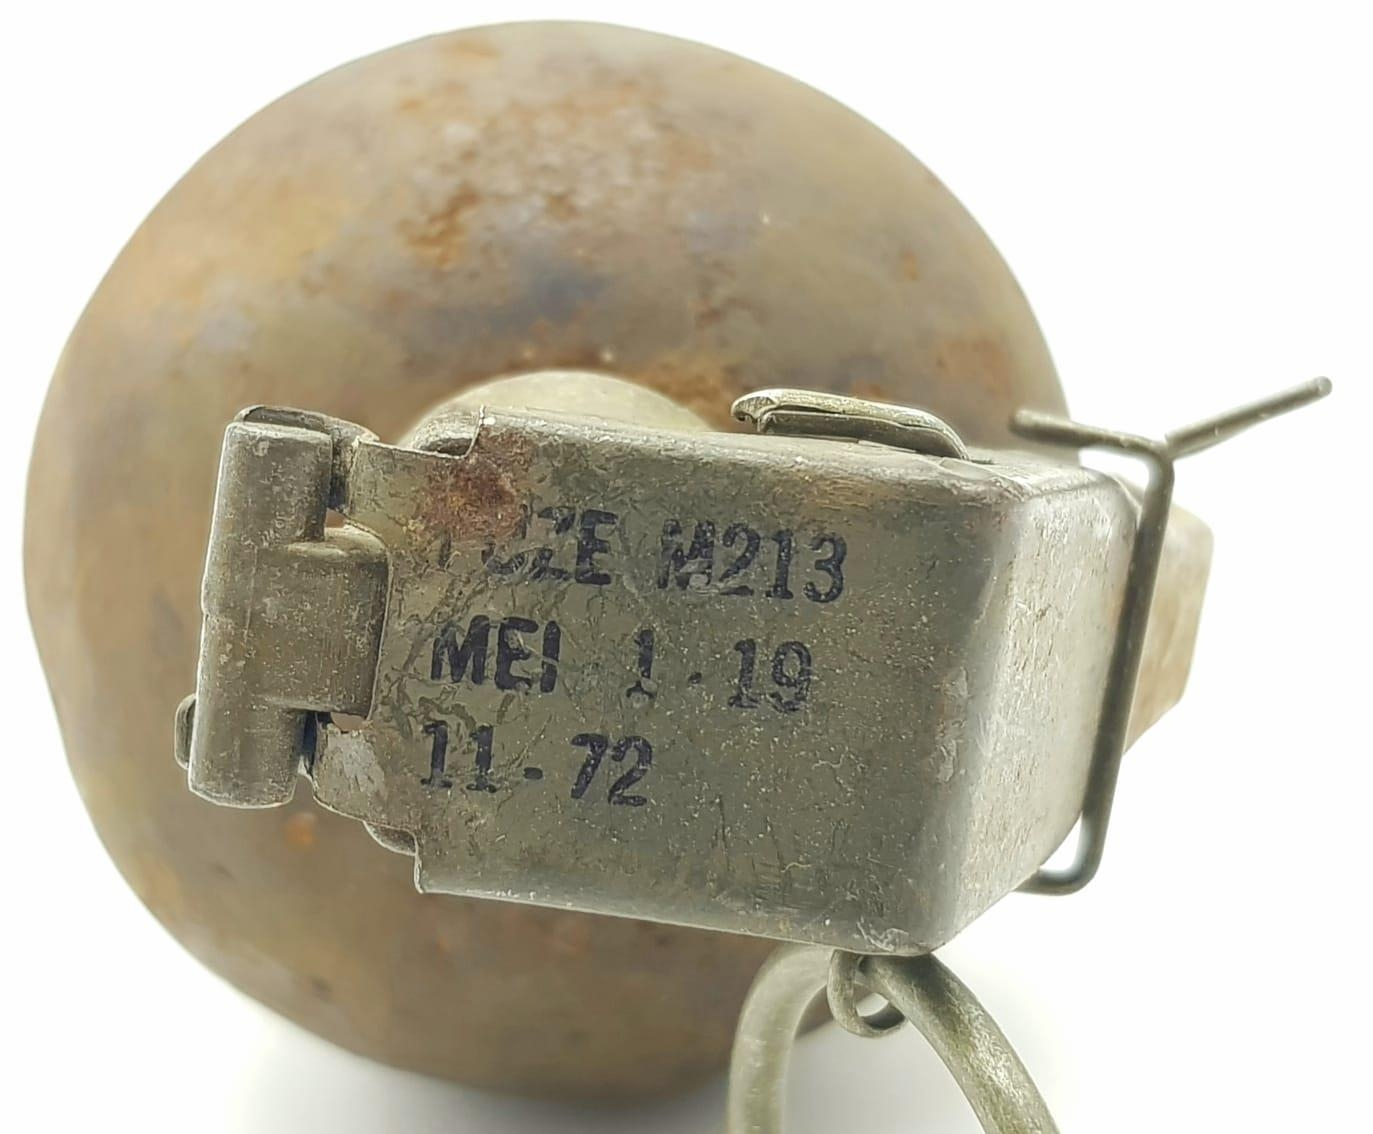 Vietnam War Era INERT US M.67 Grenade. The idea was that every all-American boy could throw a - Image 4 of 4